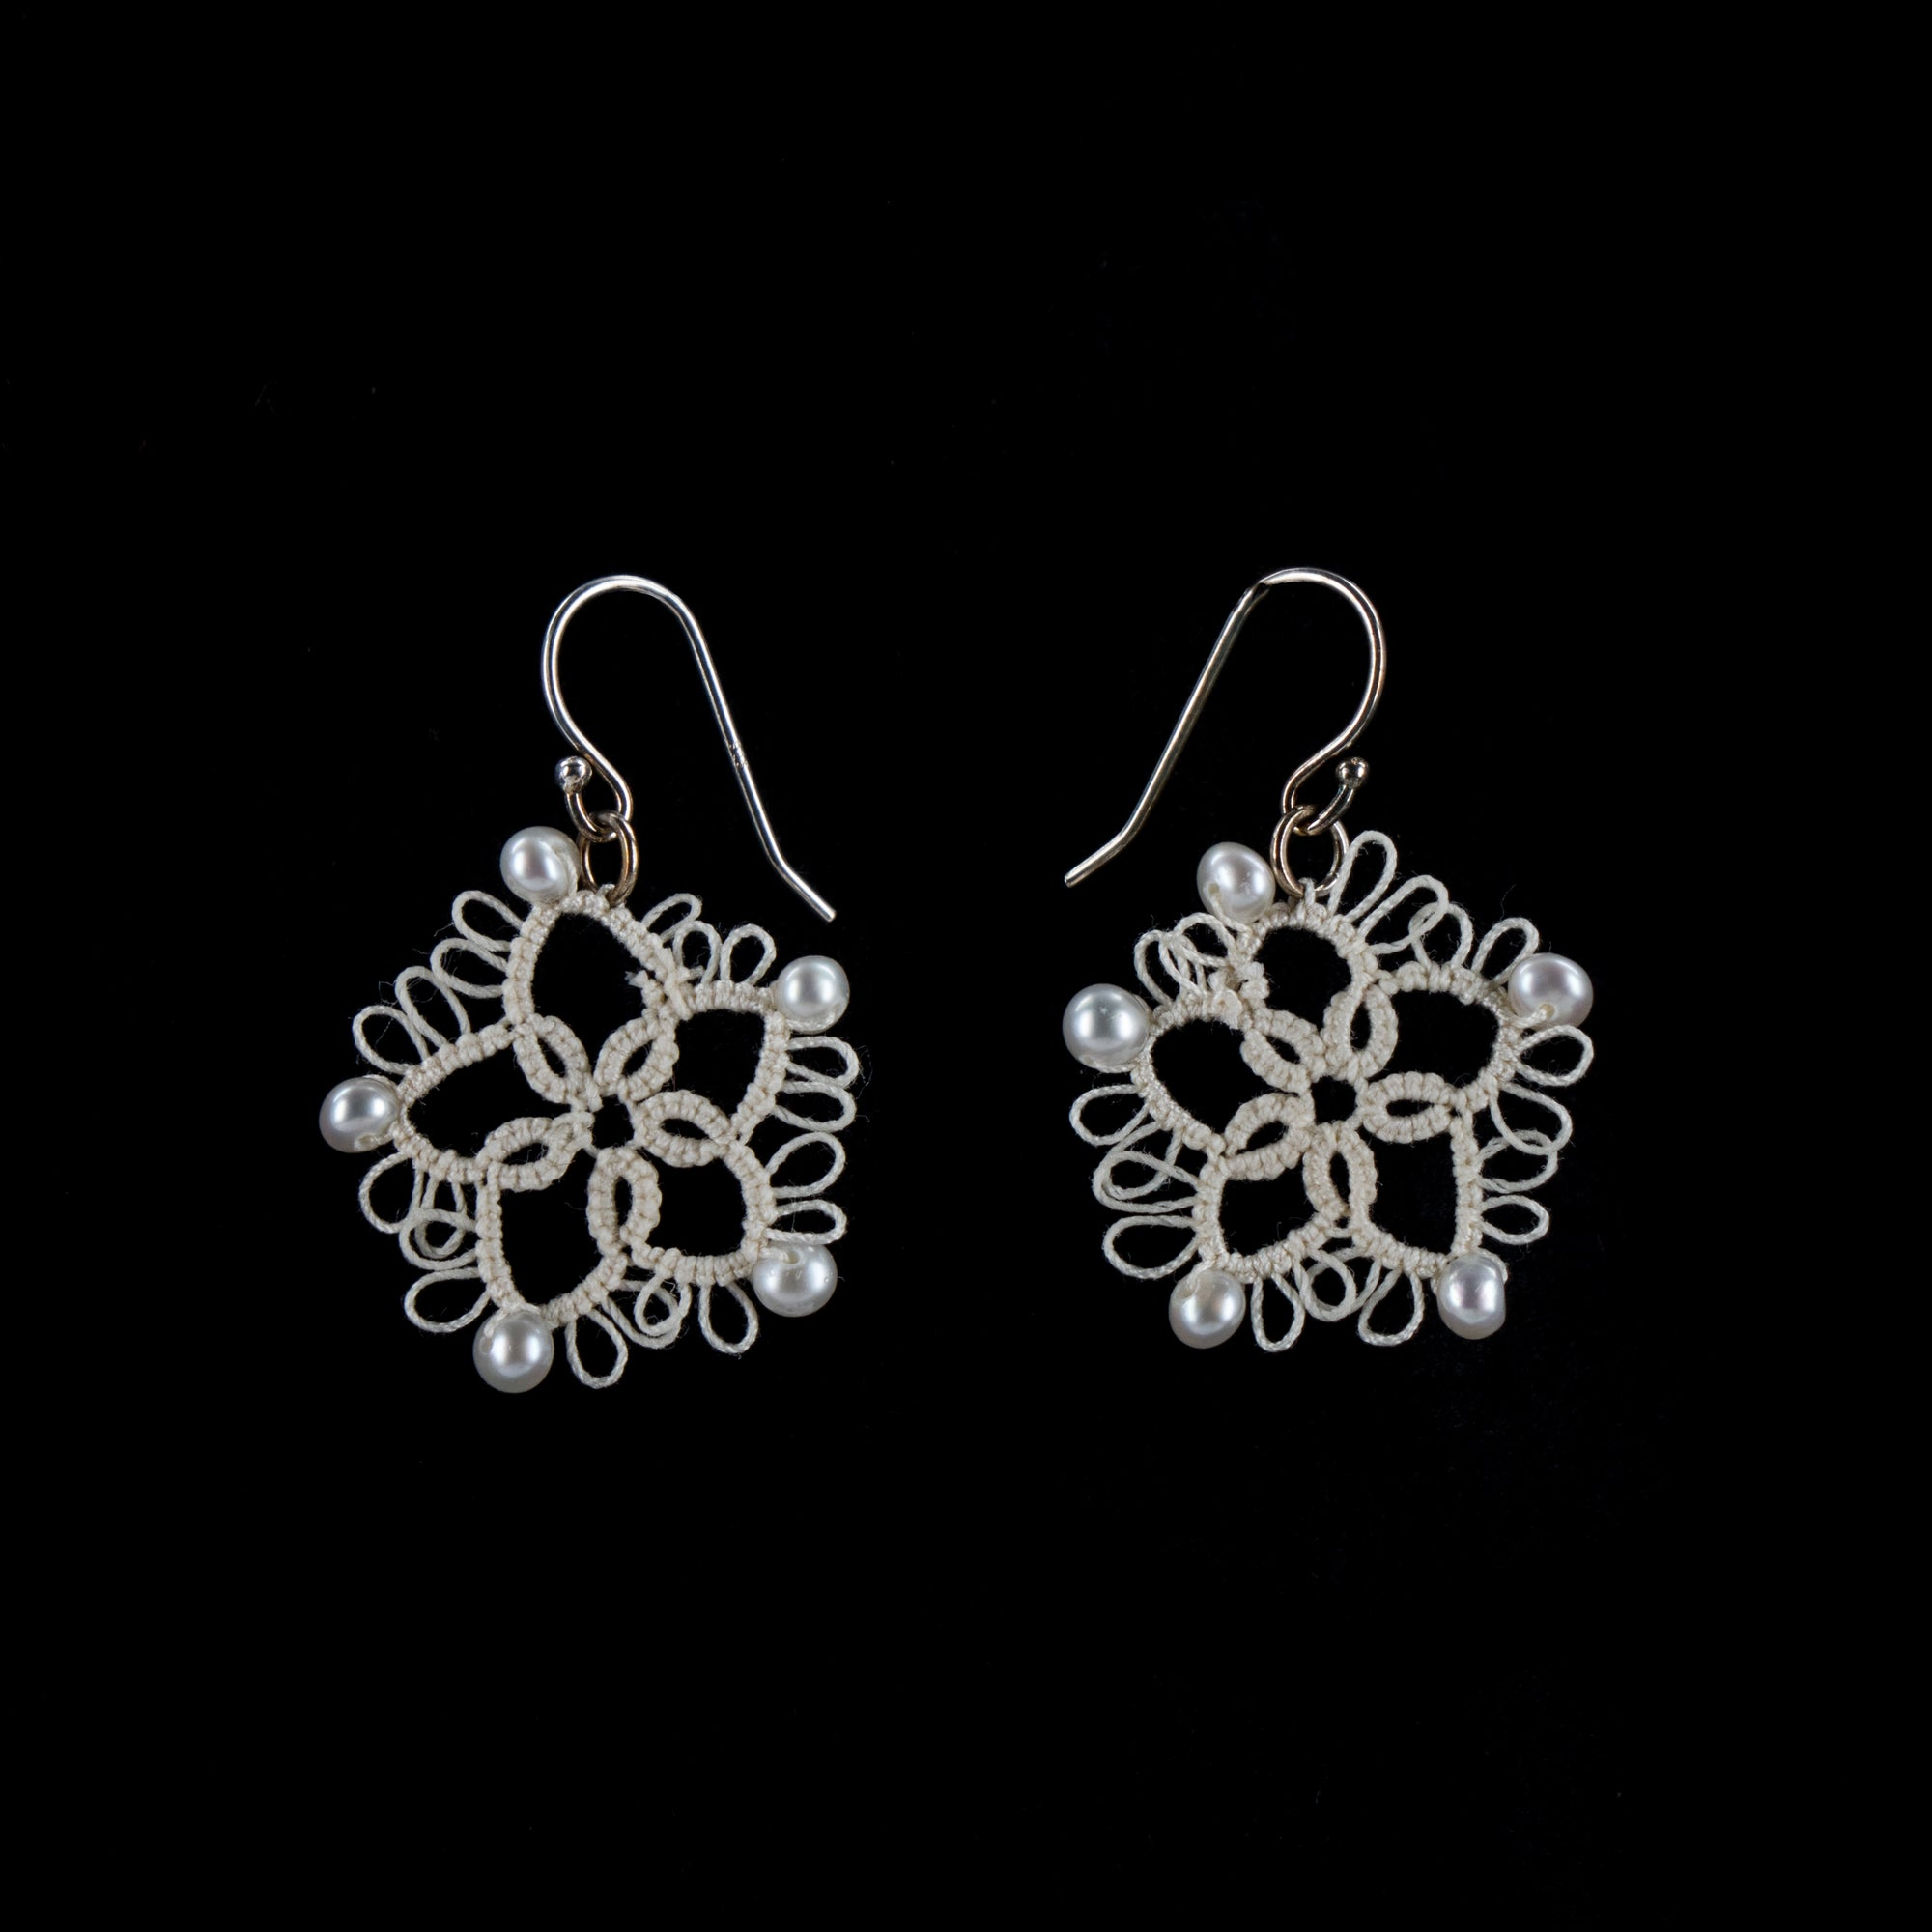 Tatted Star Earrings - Pearls